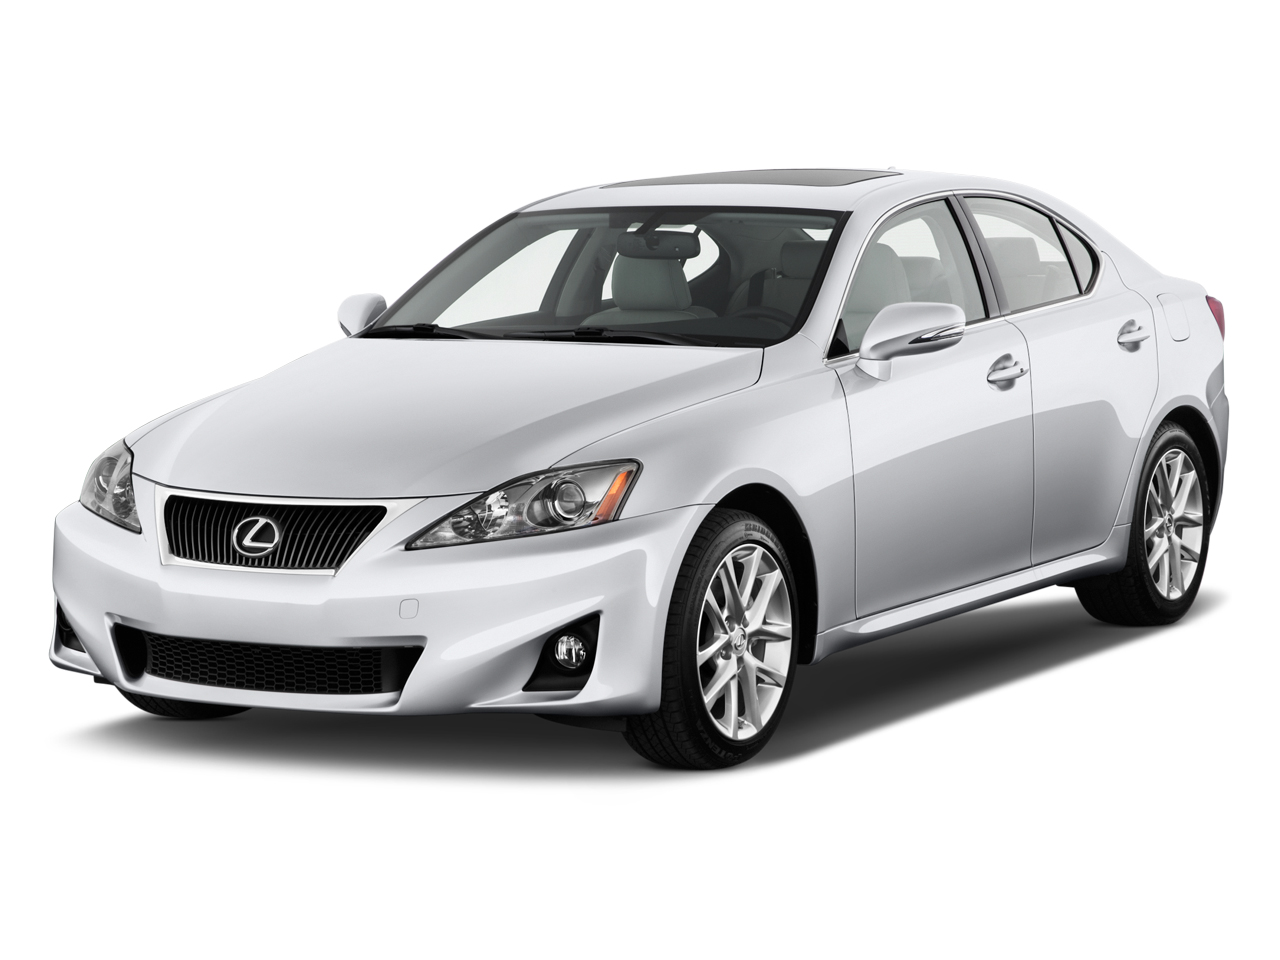 2011 Lexus Is 250 Review Ratings Specs Prices And